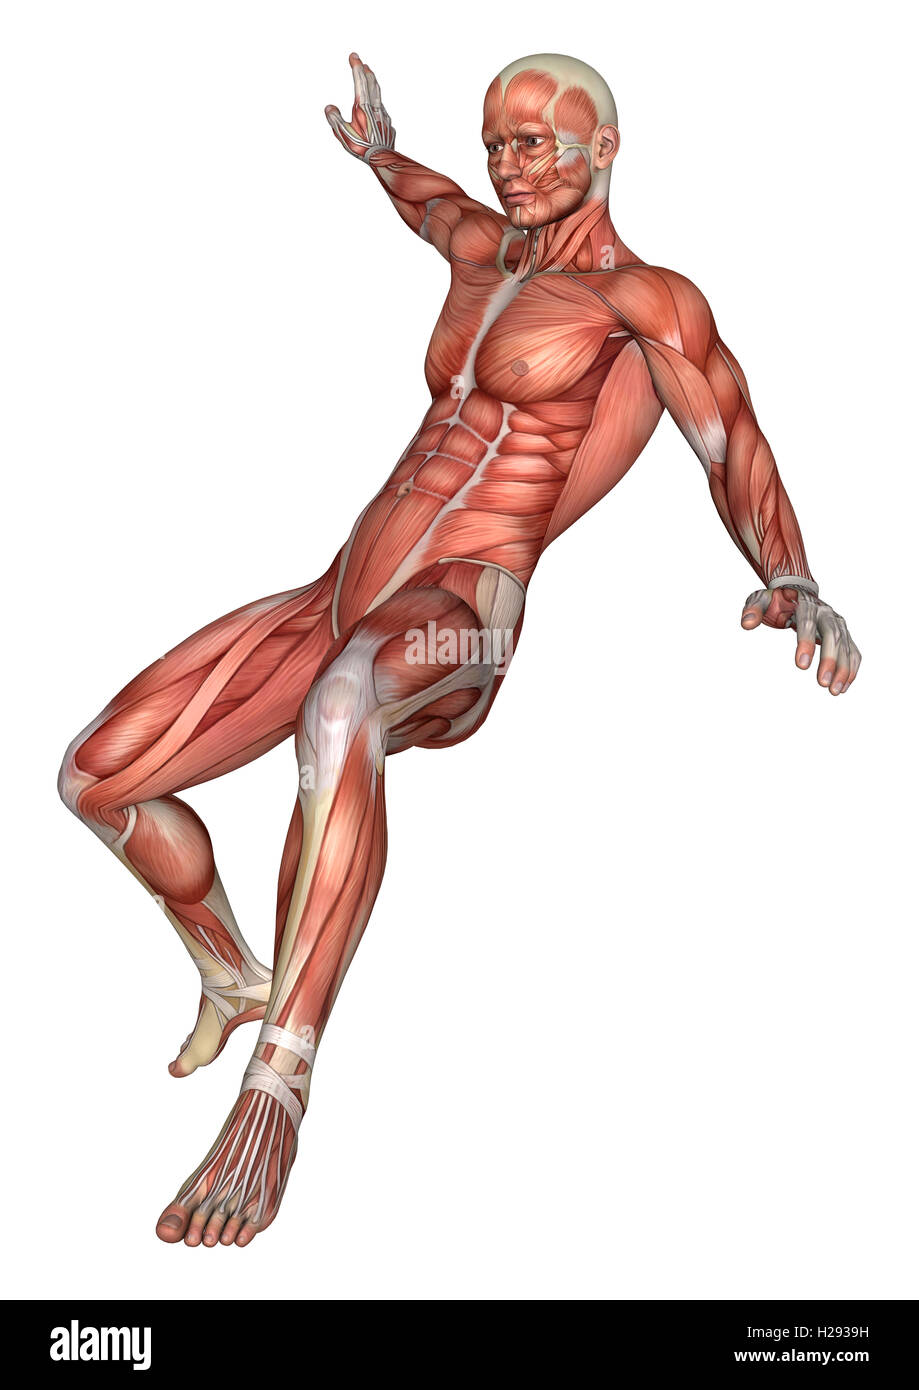 3d3d Rendering Of A Male Anatomy Figure With Muscles Map Jumping